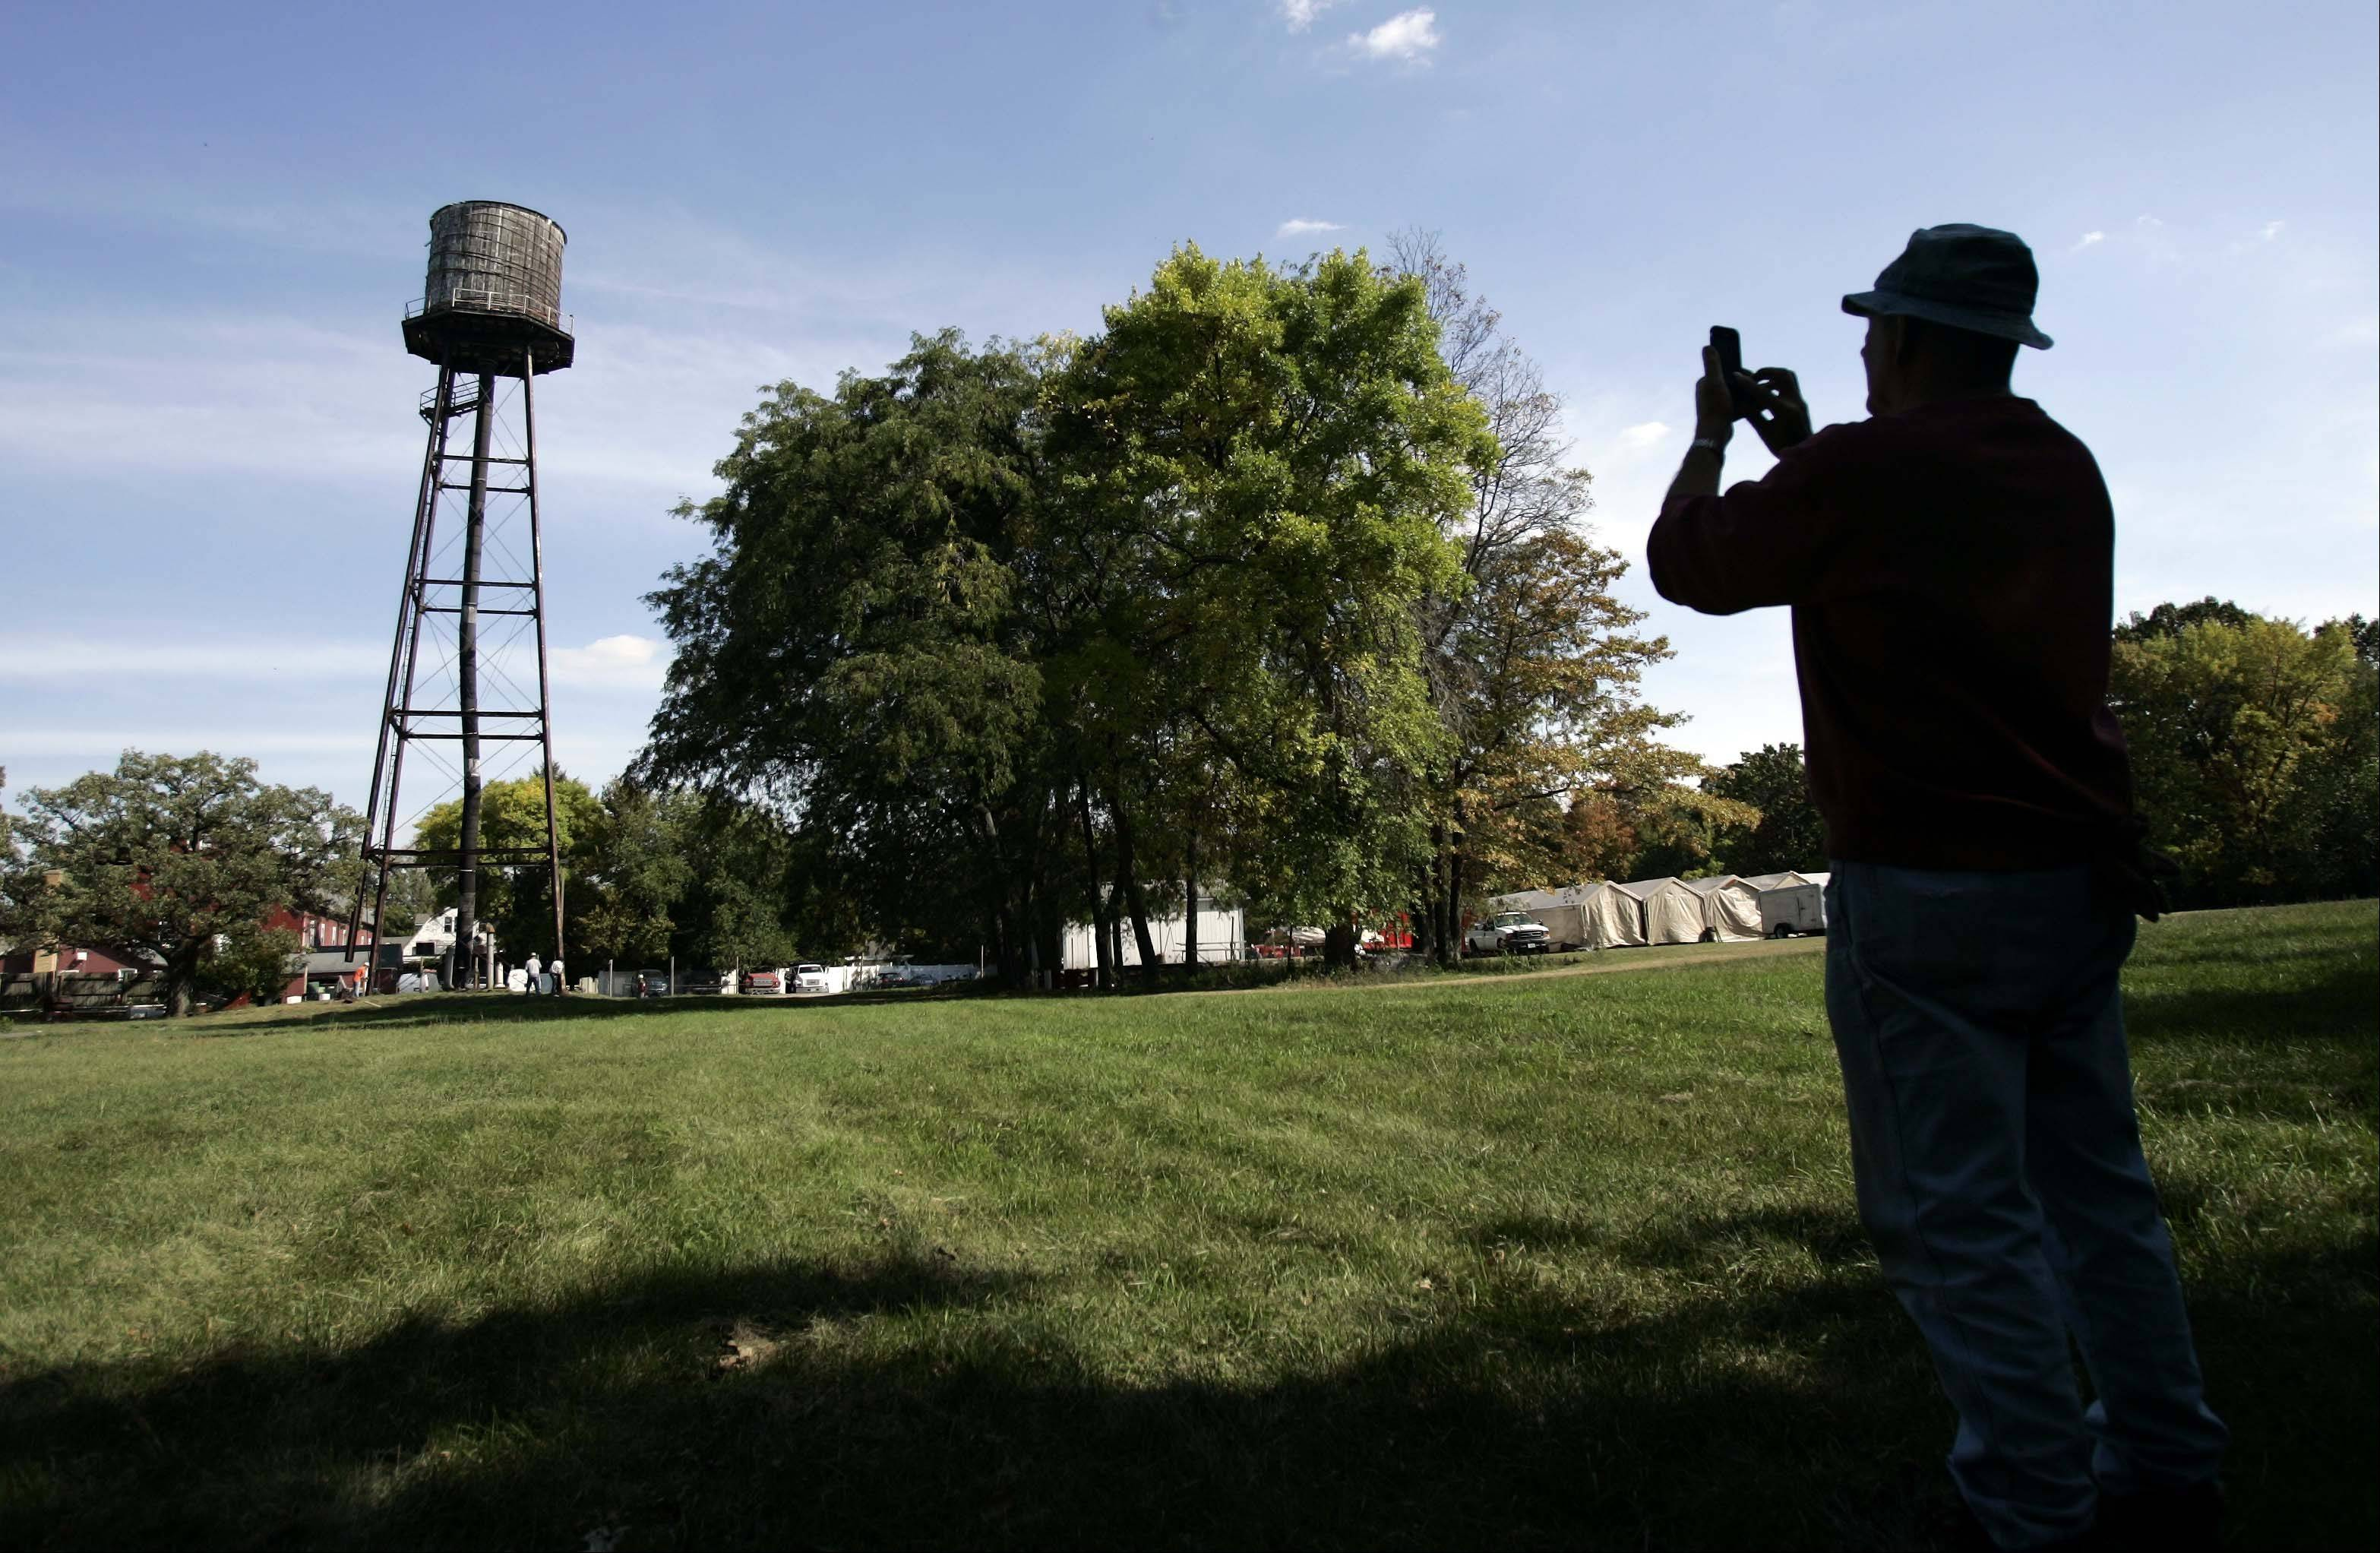 BRIAN HILL/bhill@dailyherald.comOwner Bruce Oehlerking takes some last minute photos of the water tower as Able Contractors takes down the 40,000 gallon water tower that was used for the fire sprinkler system at the Milk Pail in un-Incorporated Kane County Tuesday September 25, 2012. The 120 foot tall tower which was built in 1952 functioned until the early 90s when they connected to East Dundee water system.